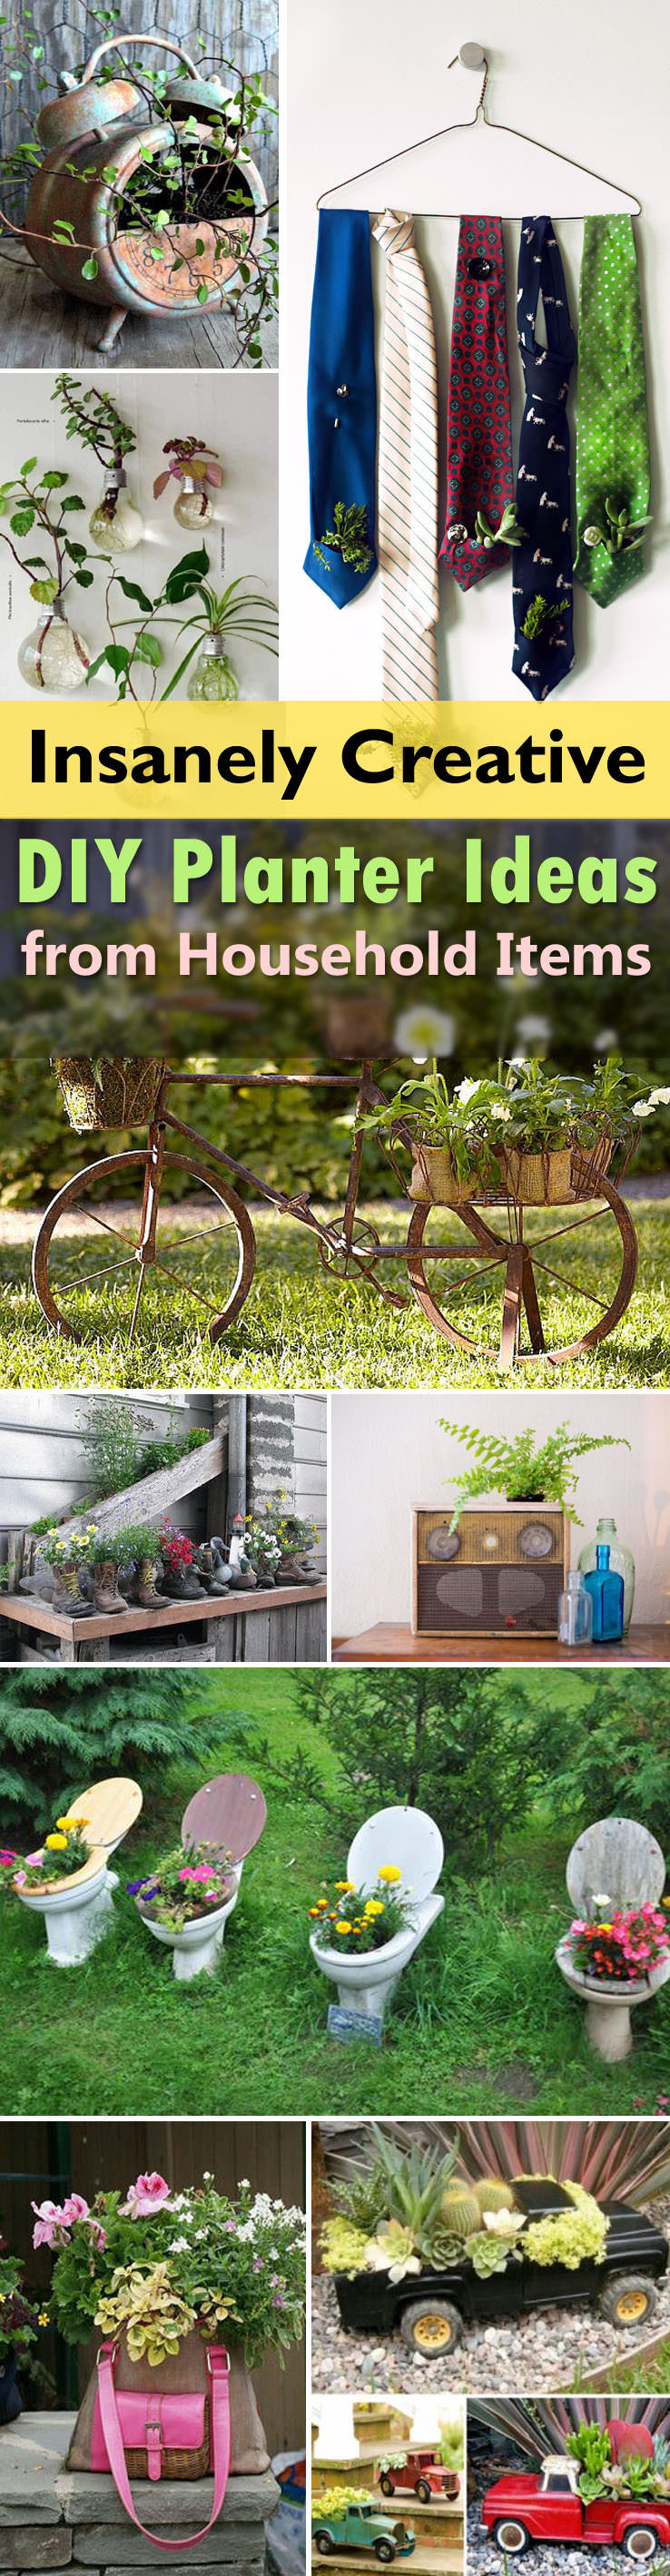 See These 29 Insanely Creative Planter Ideas That You Can Make From  Household Items With Their